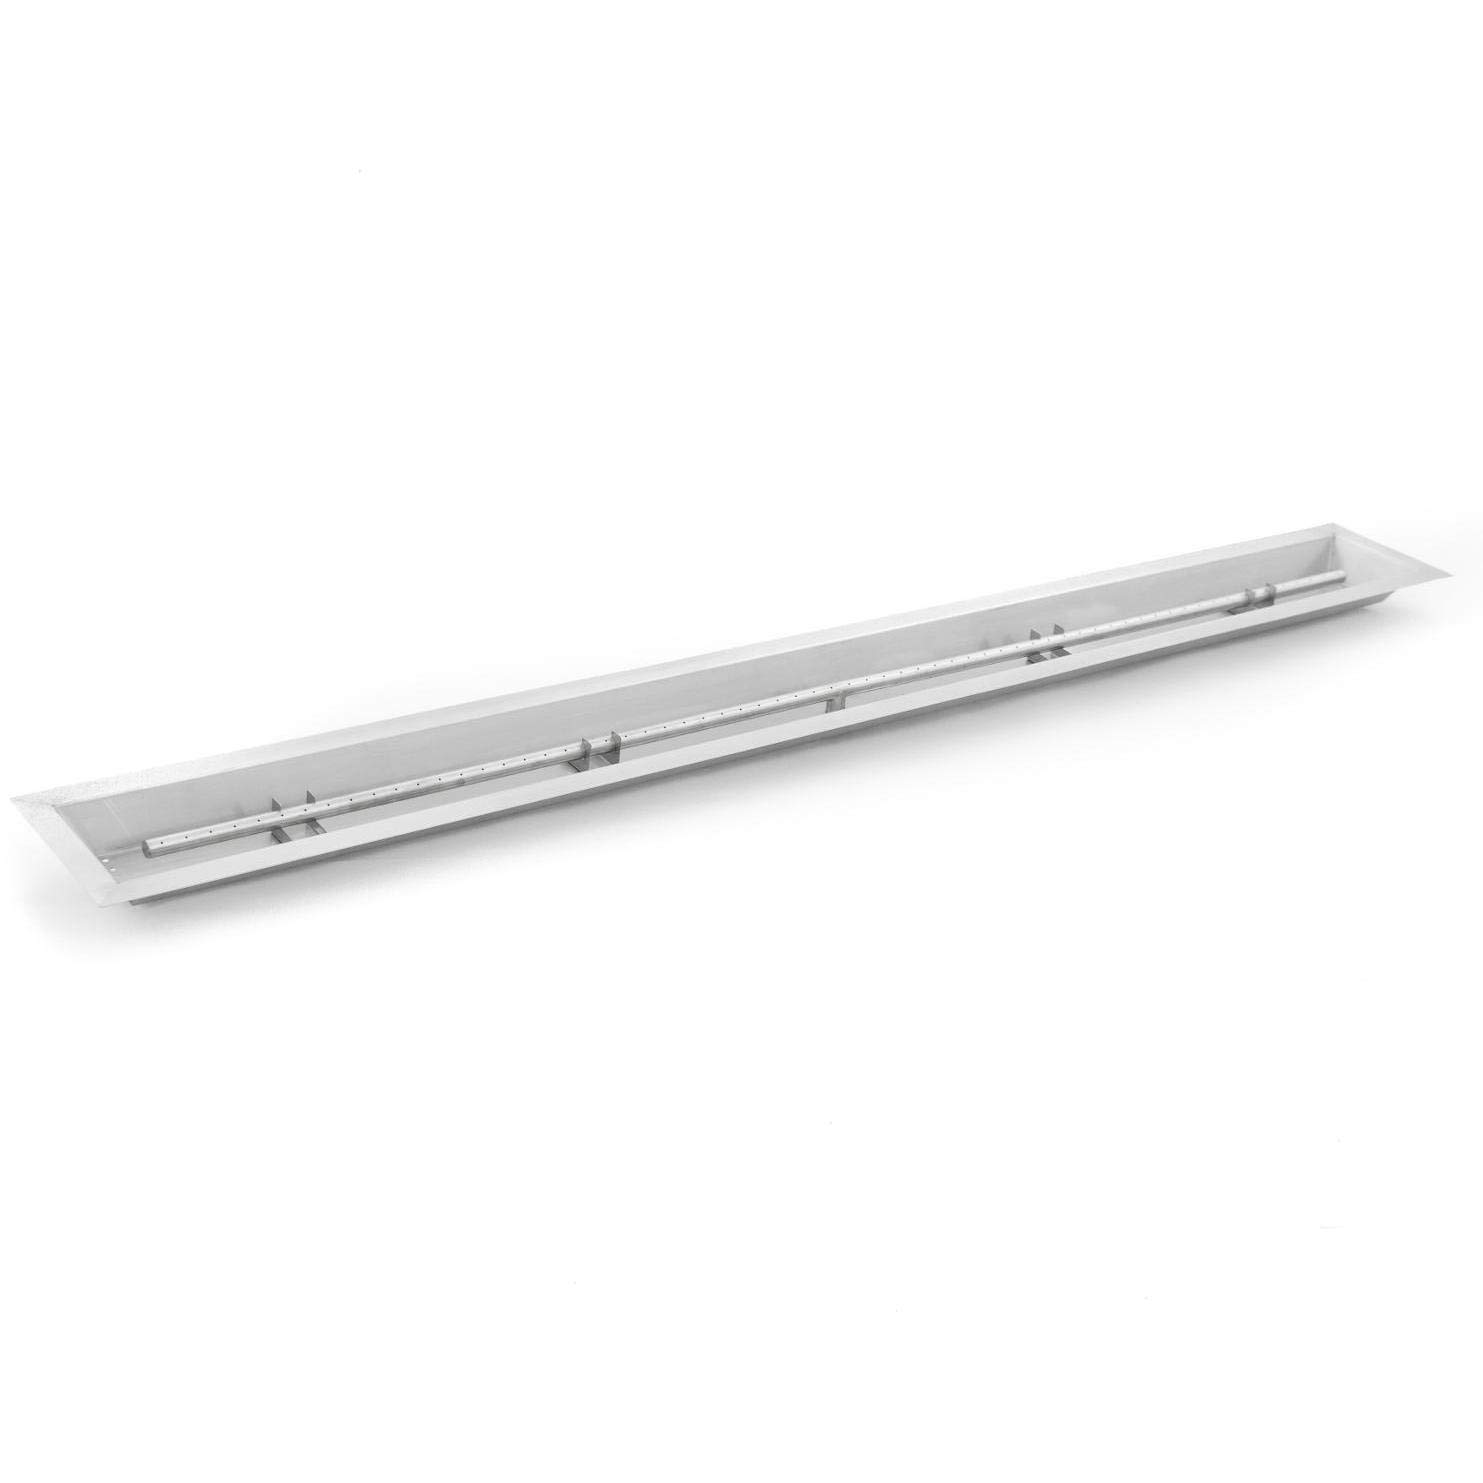 Lakeview Outdoor Designs 72-Inch Linear Drop-in Pan with 60-Inch Propane T-Burner (Ships As Natural Gas) by Lakeview Outdoor Designs